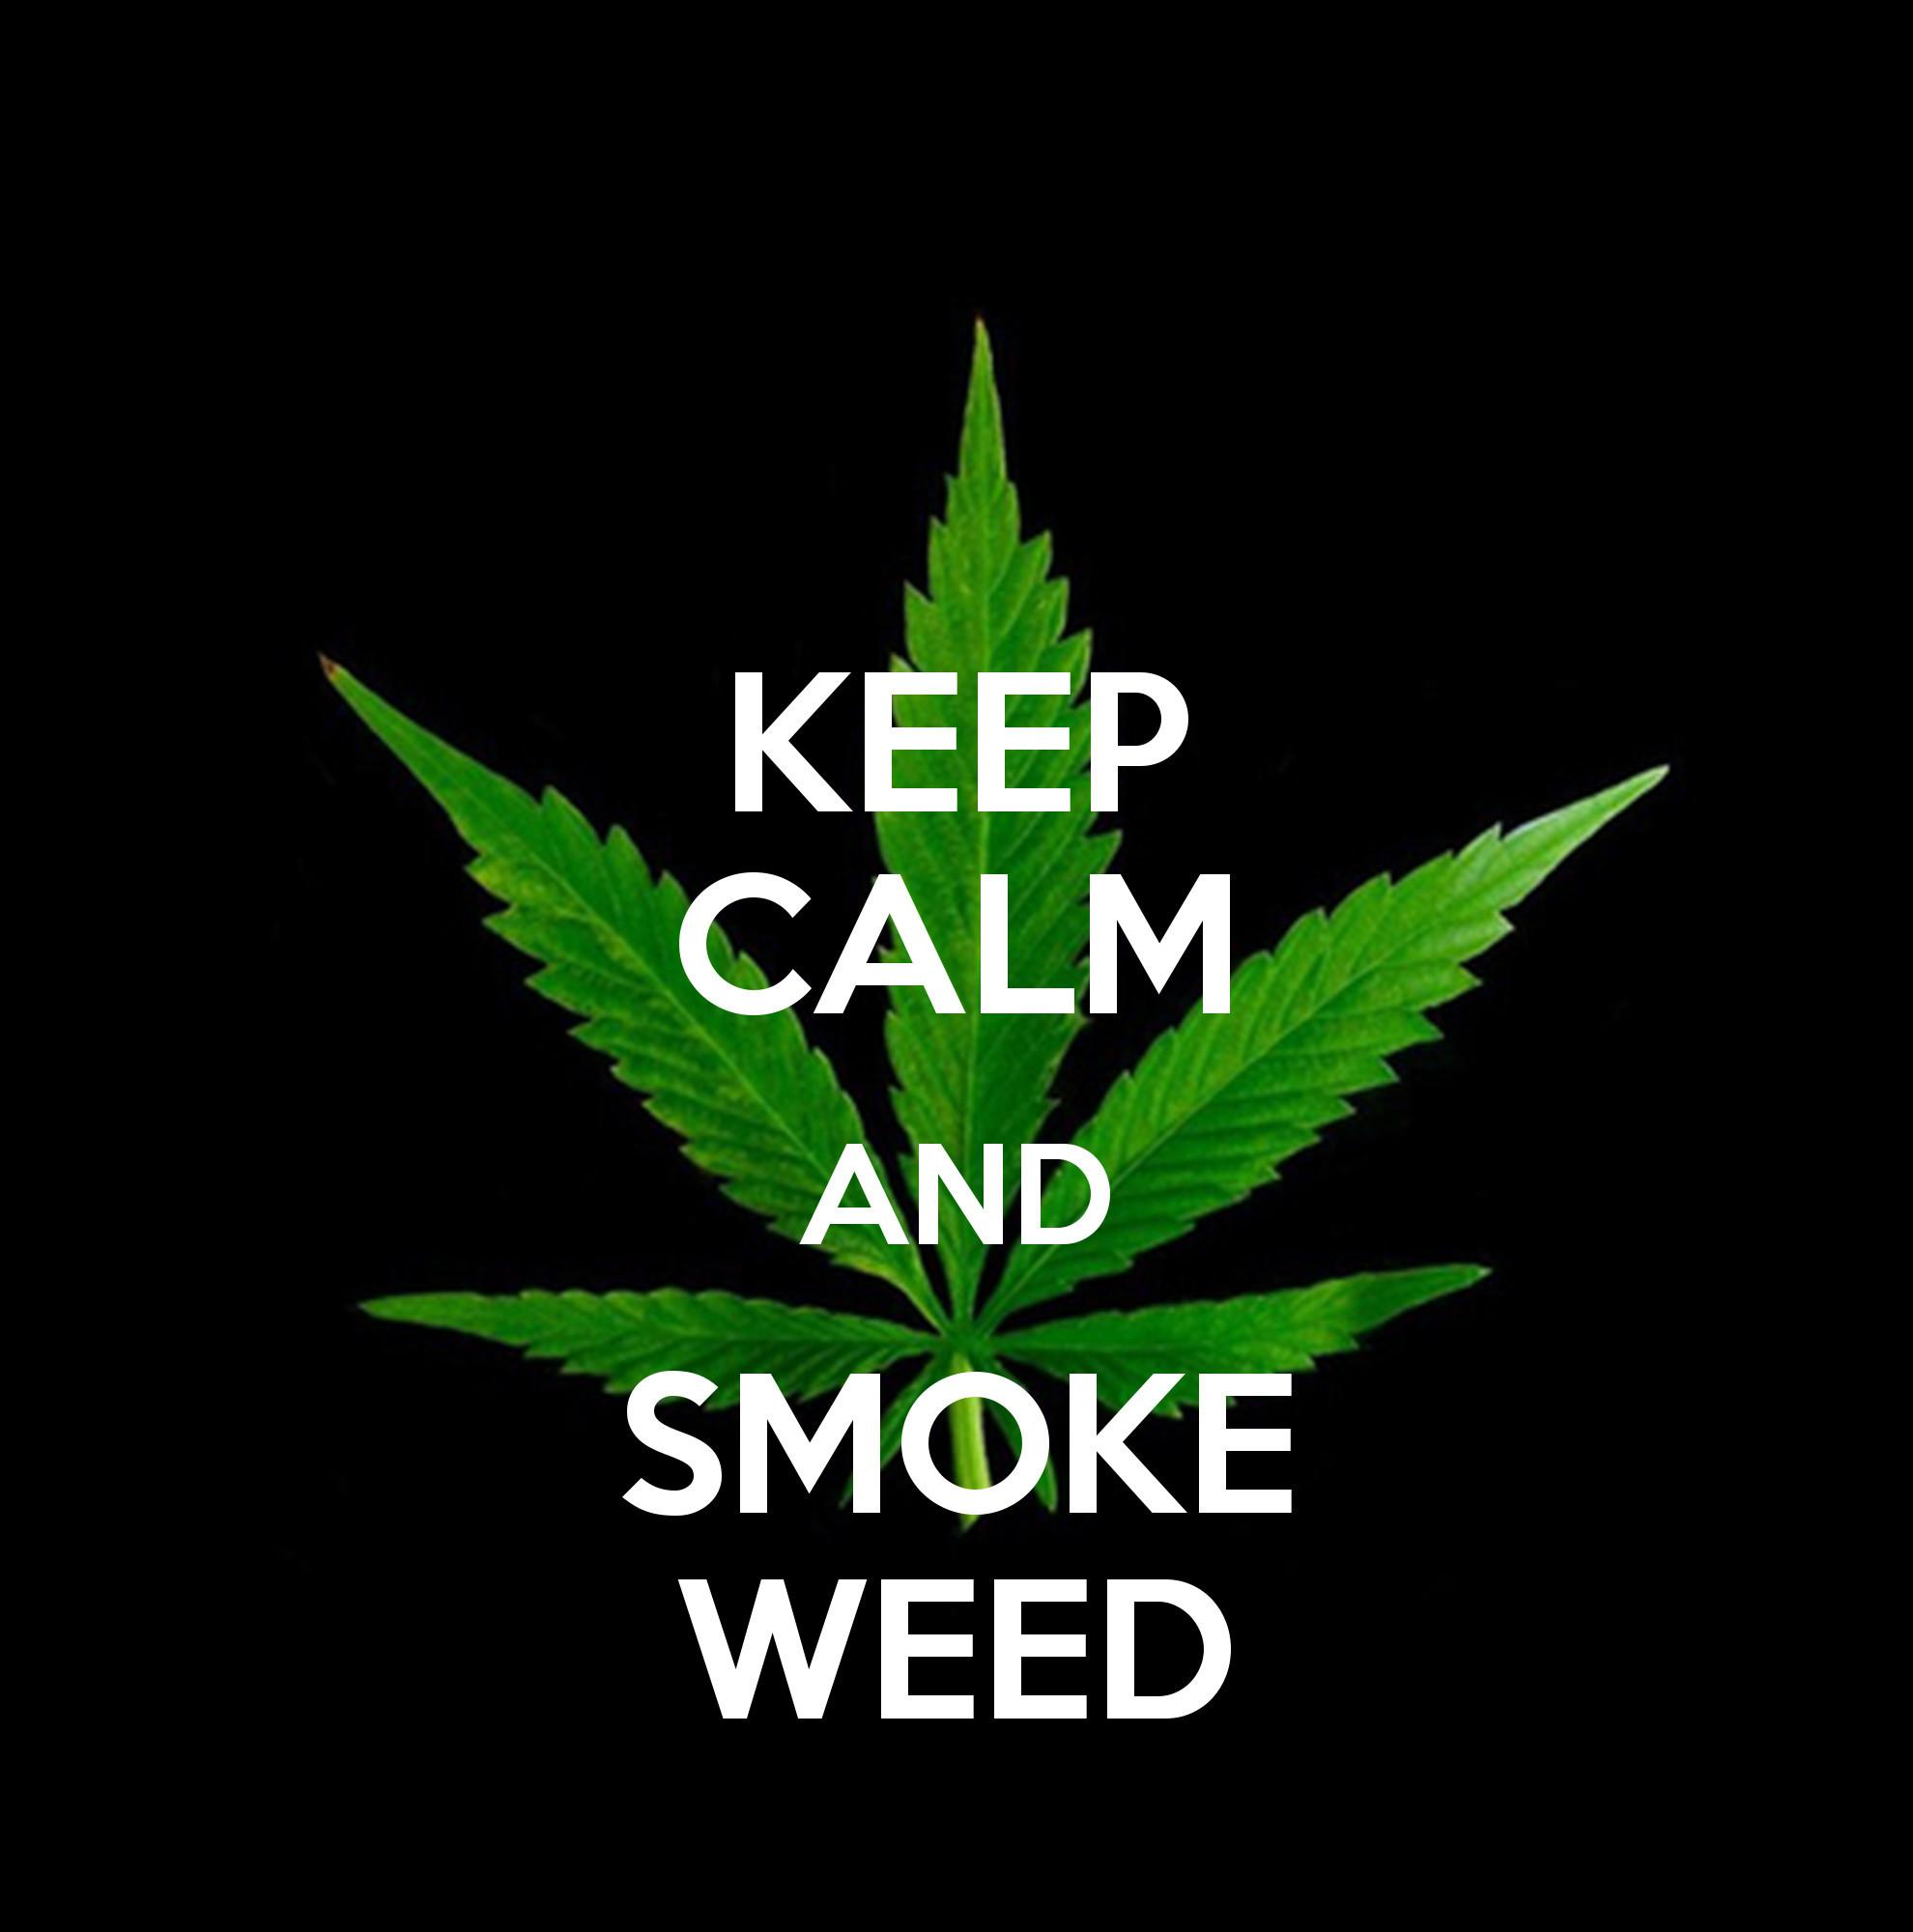 Weed wallpaper hd iphone 6 (60 Wallpapers) - Adorable ...